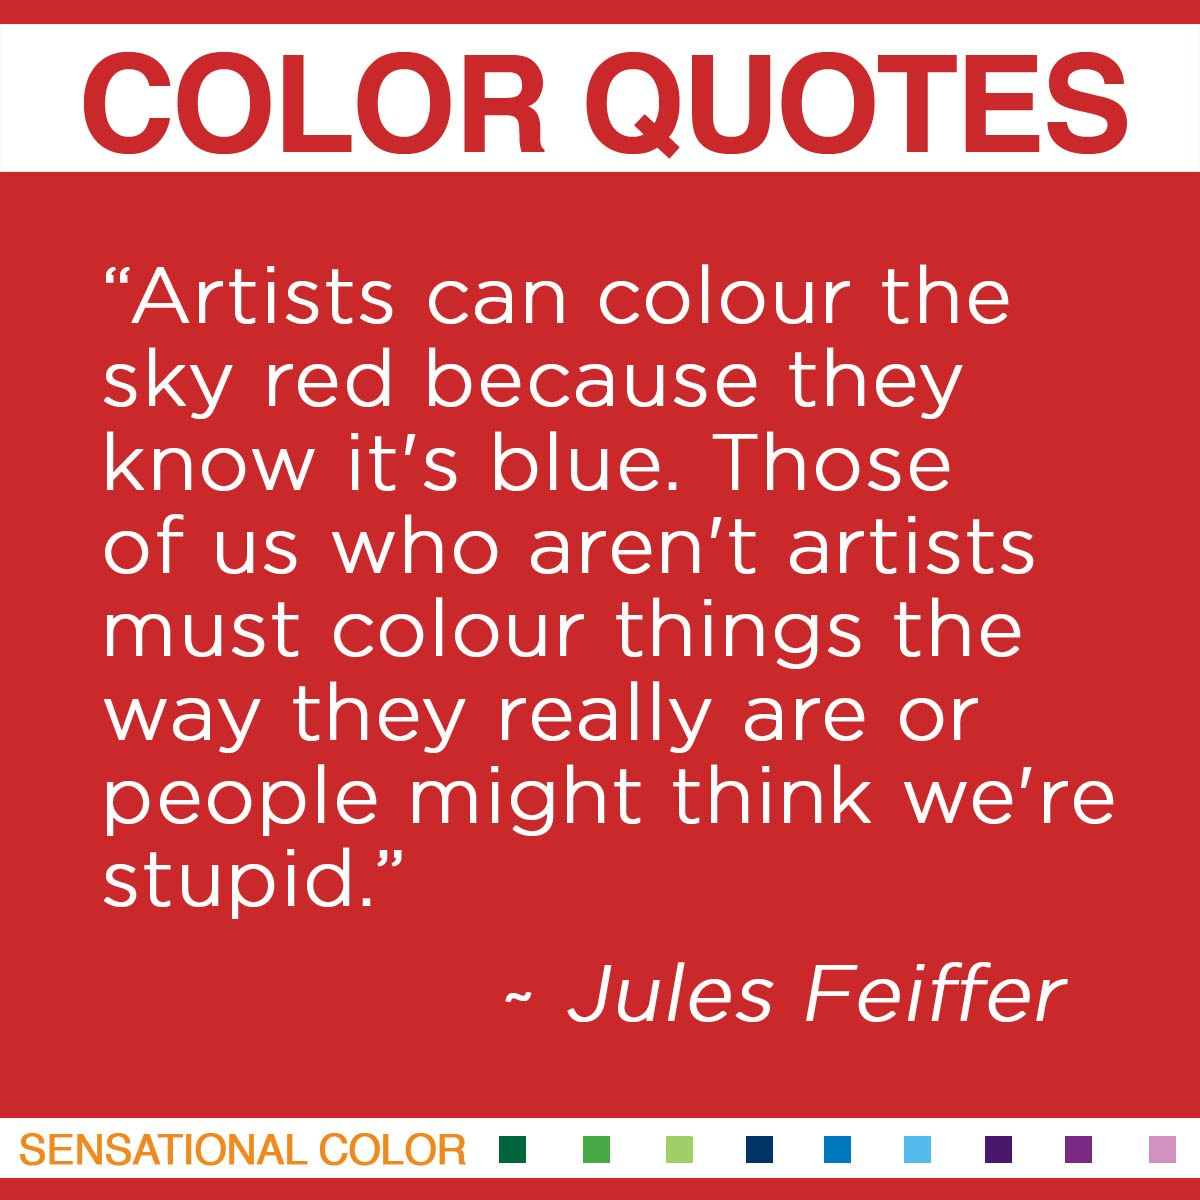 """Artists can colour the sky red because they know it's blue. Those of us who aren't artists must colour things the way they really are or people might think we're stupid."" - Jules Feiffer"